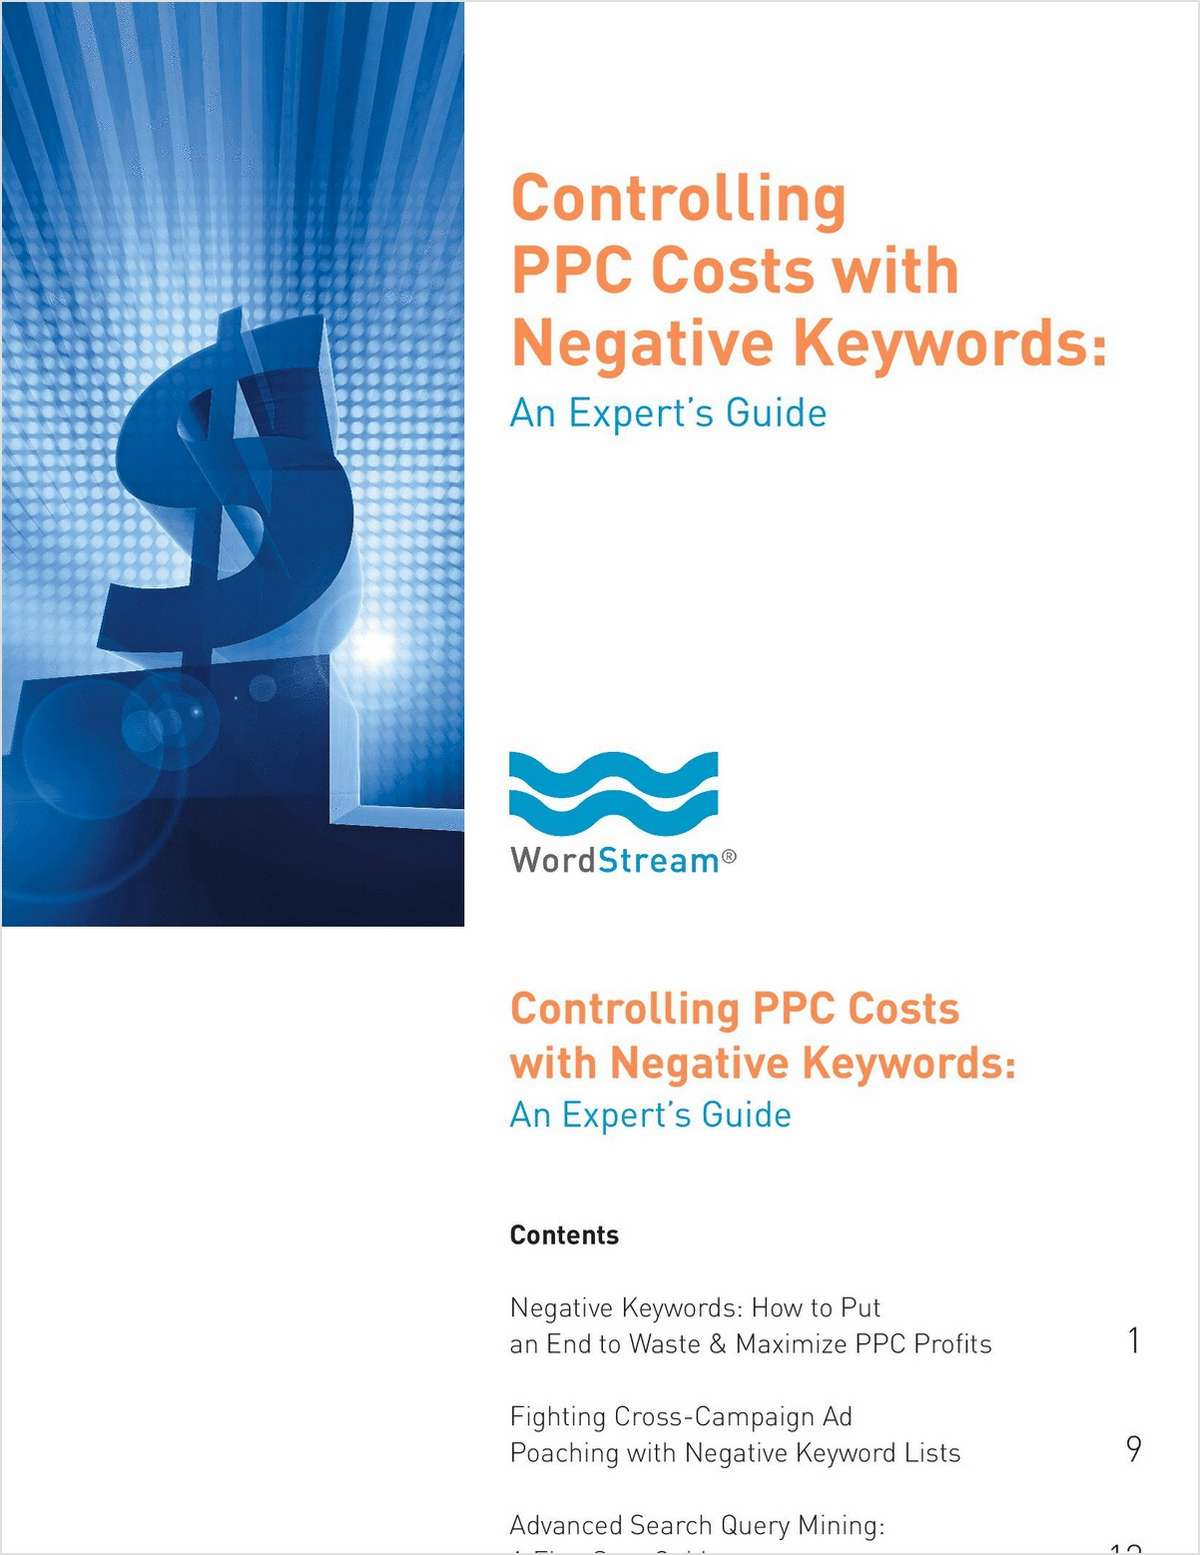 Controlling PPC Costs with Negative Keywords: An Expert's Guide